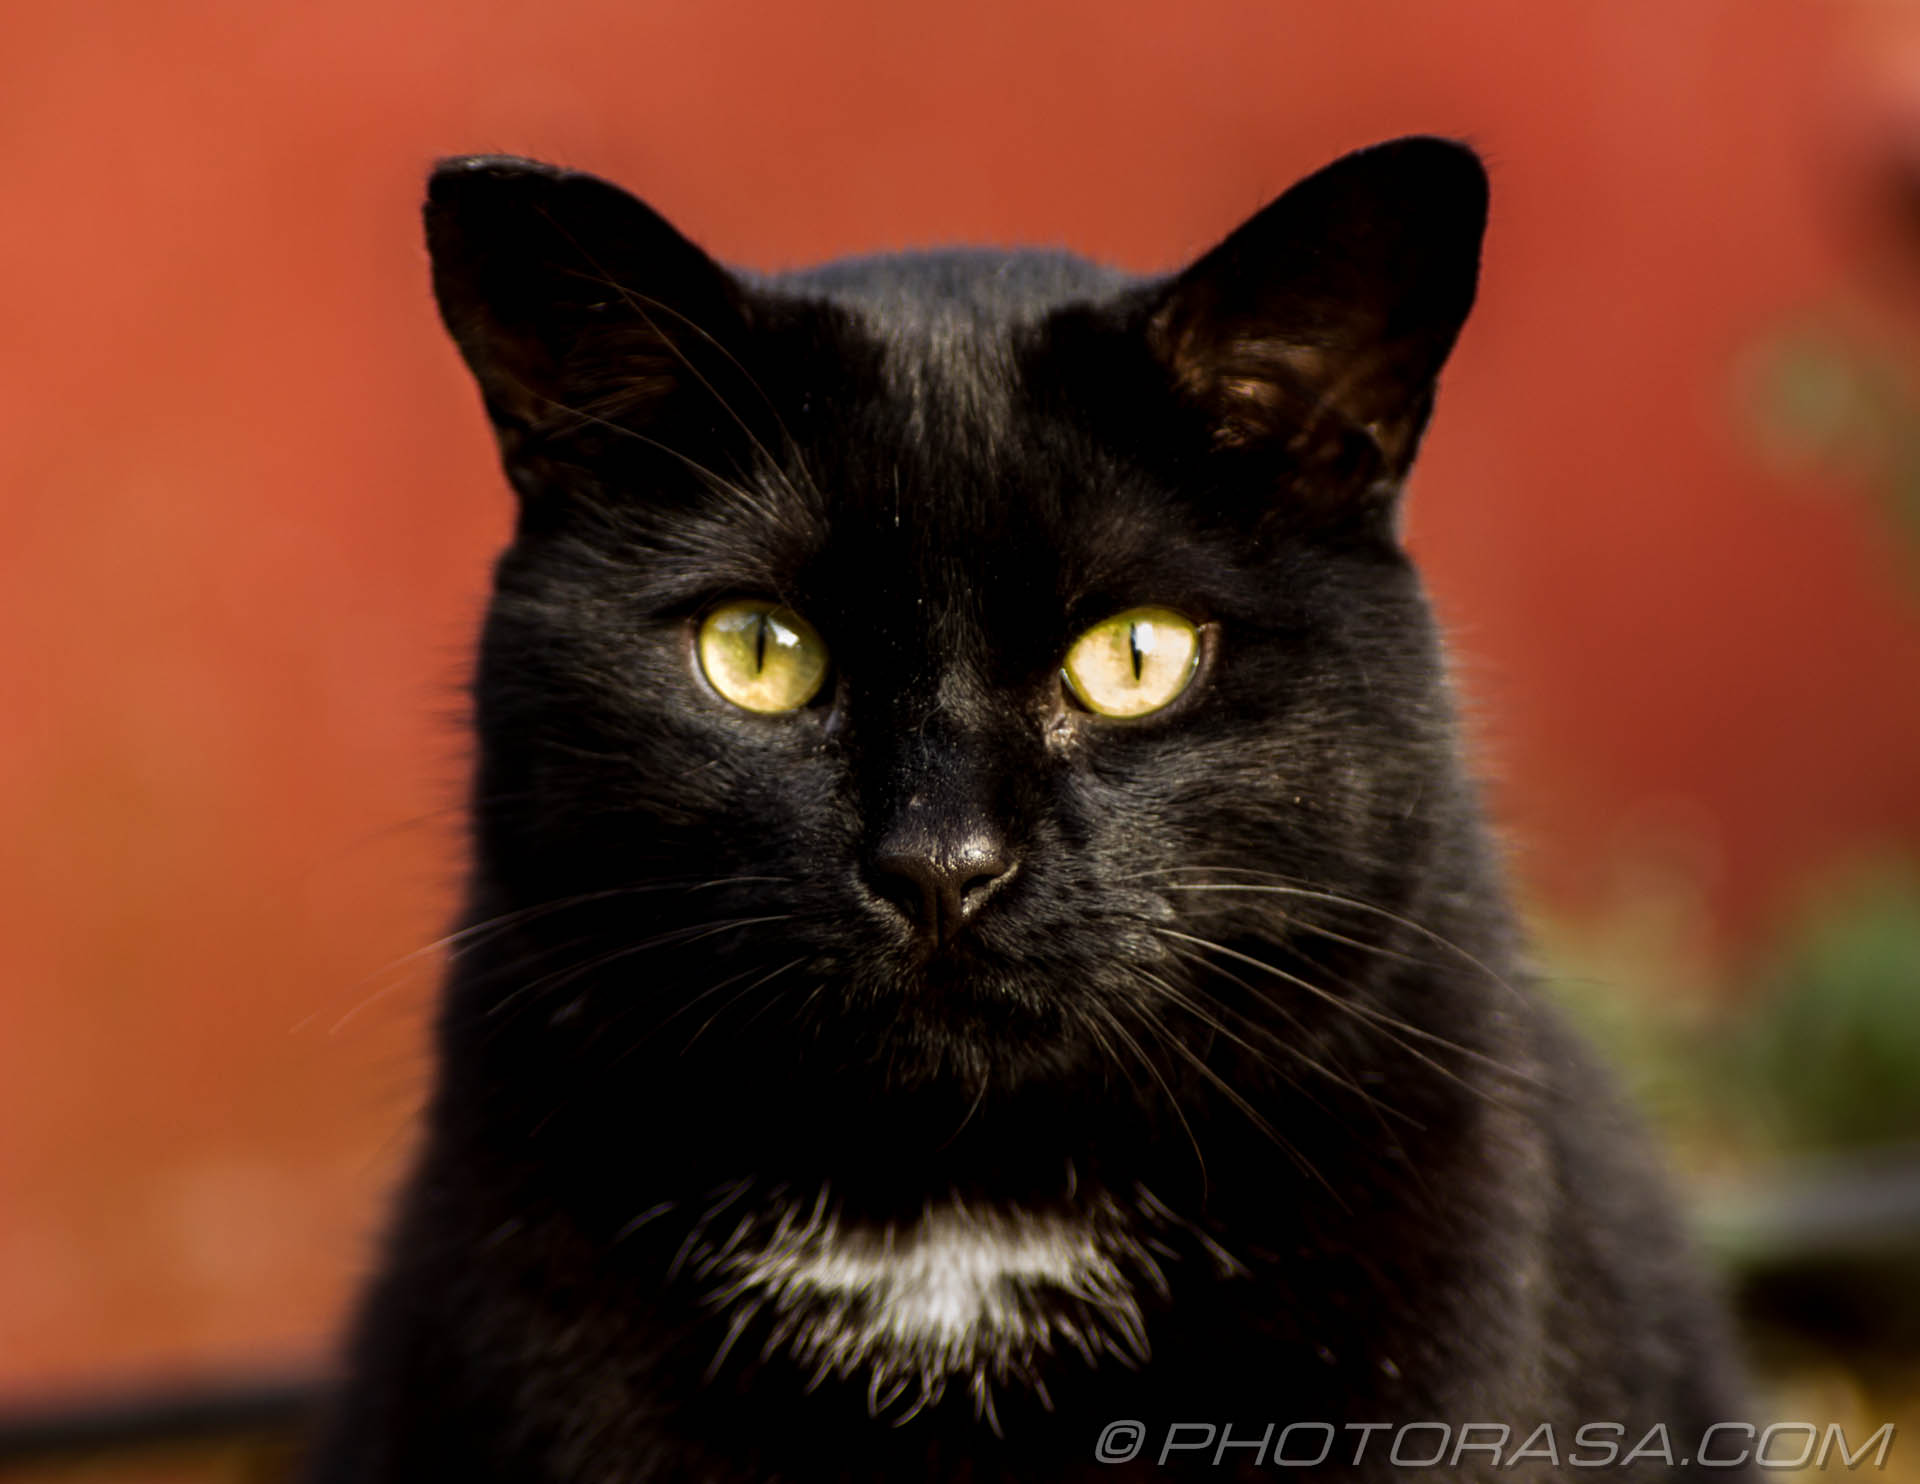 http://photorasa.com/black-cats/black-cat-with-white-chest/